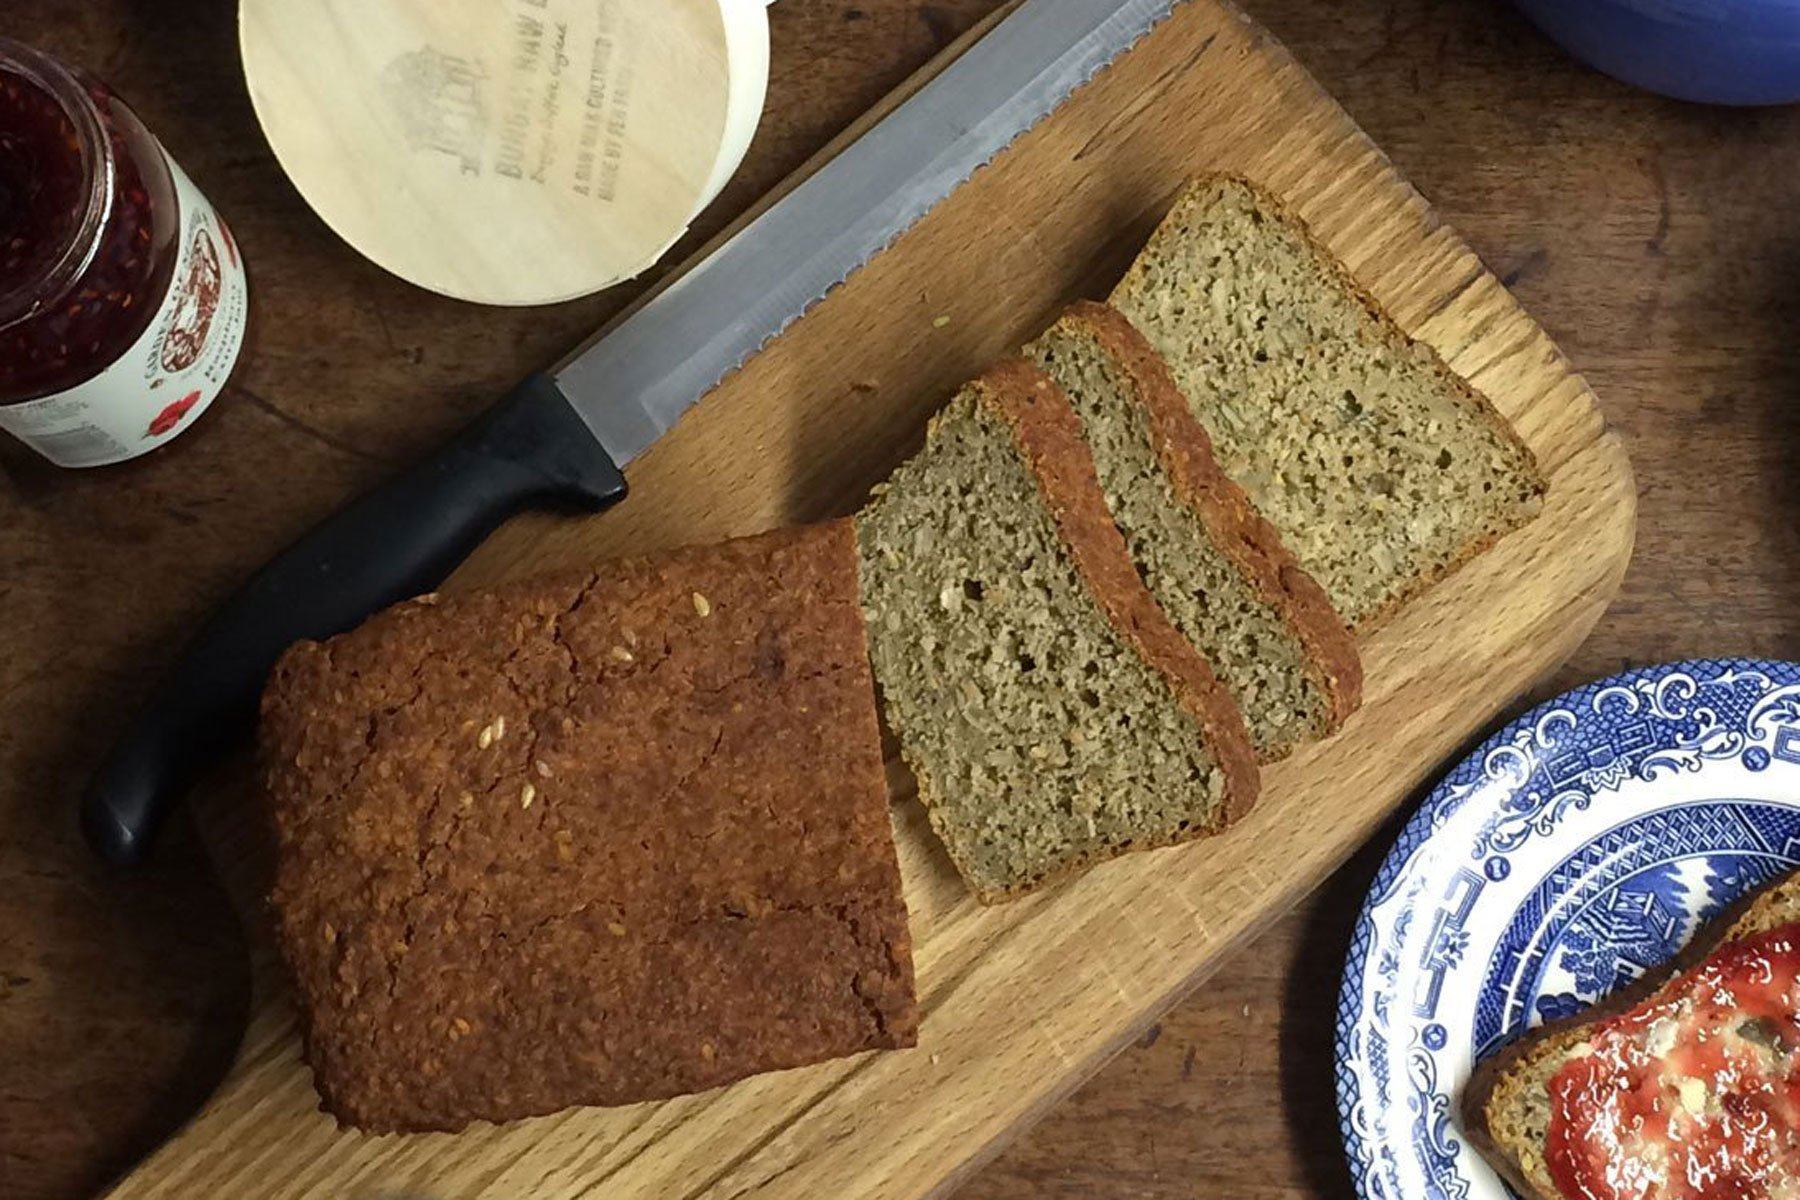 Quinoa, Pea and Multi-Seed Loaf